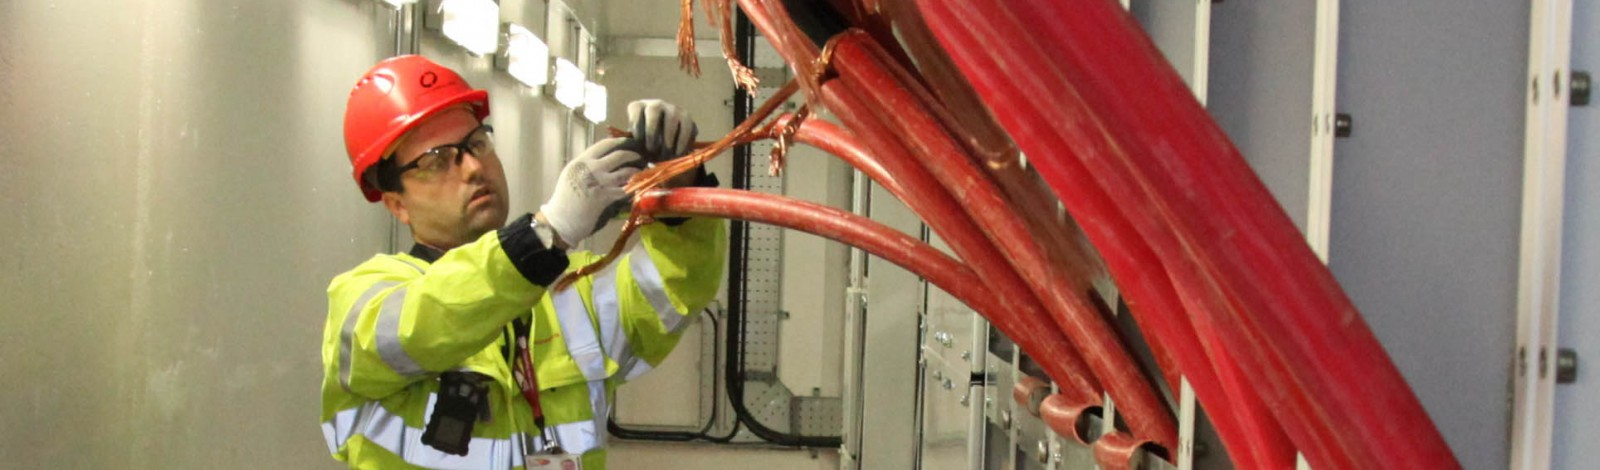 UK Power Network Energy Centre – completion of two 132kV circuits - Clancy Docwra